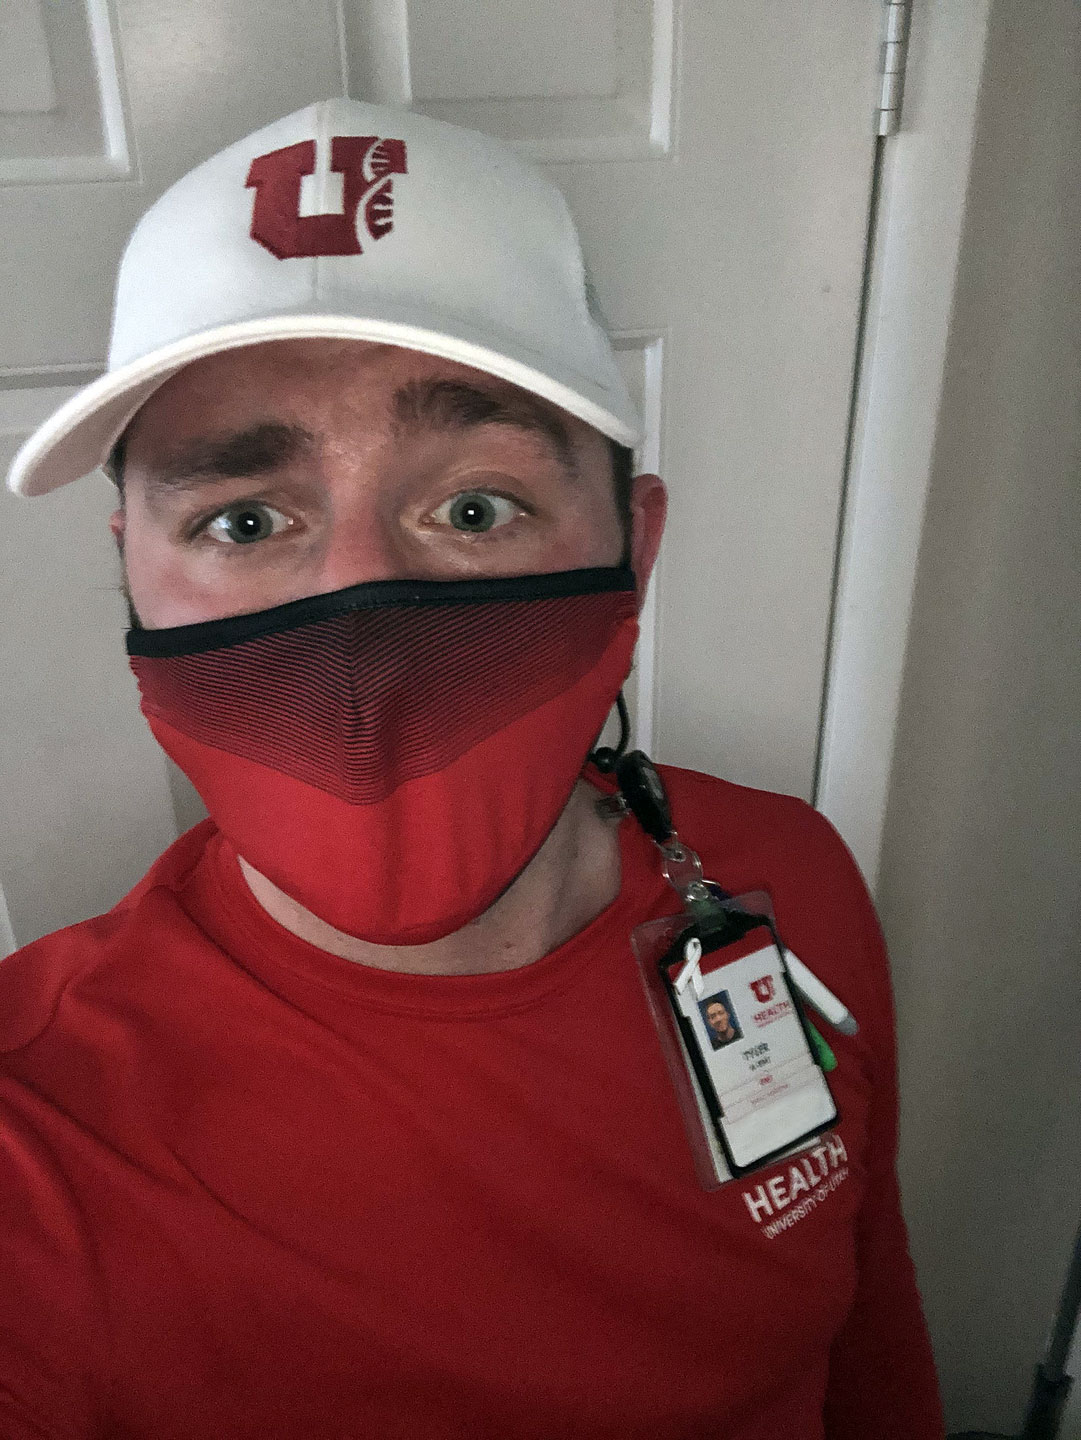 Tyler is a health care worker at the U.